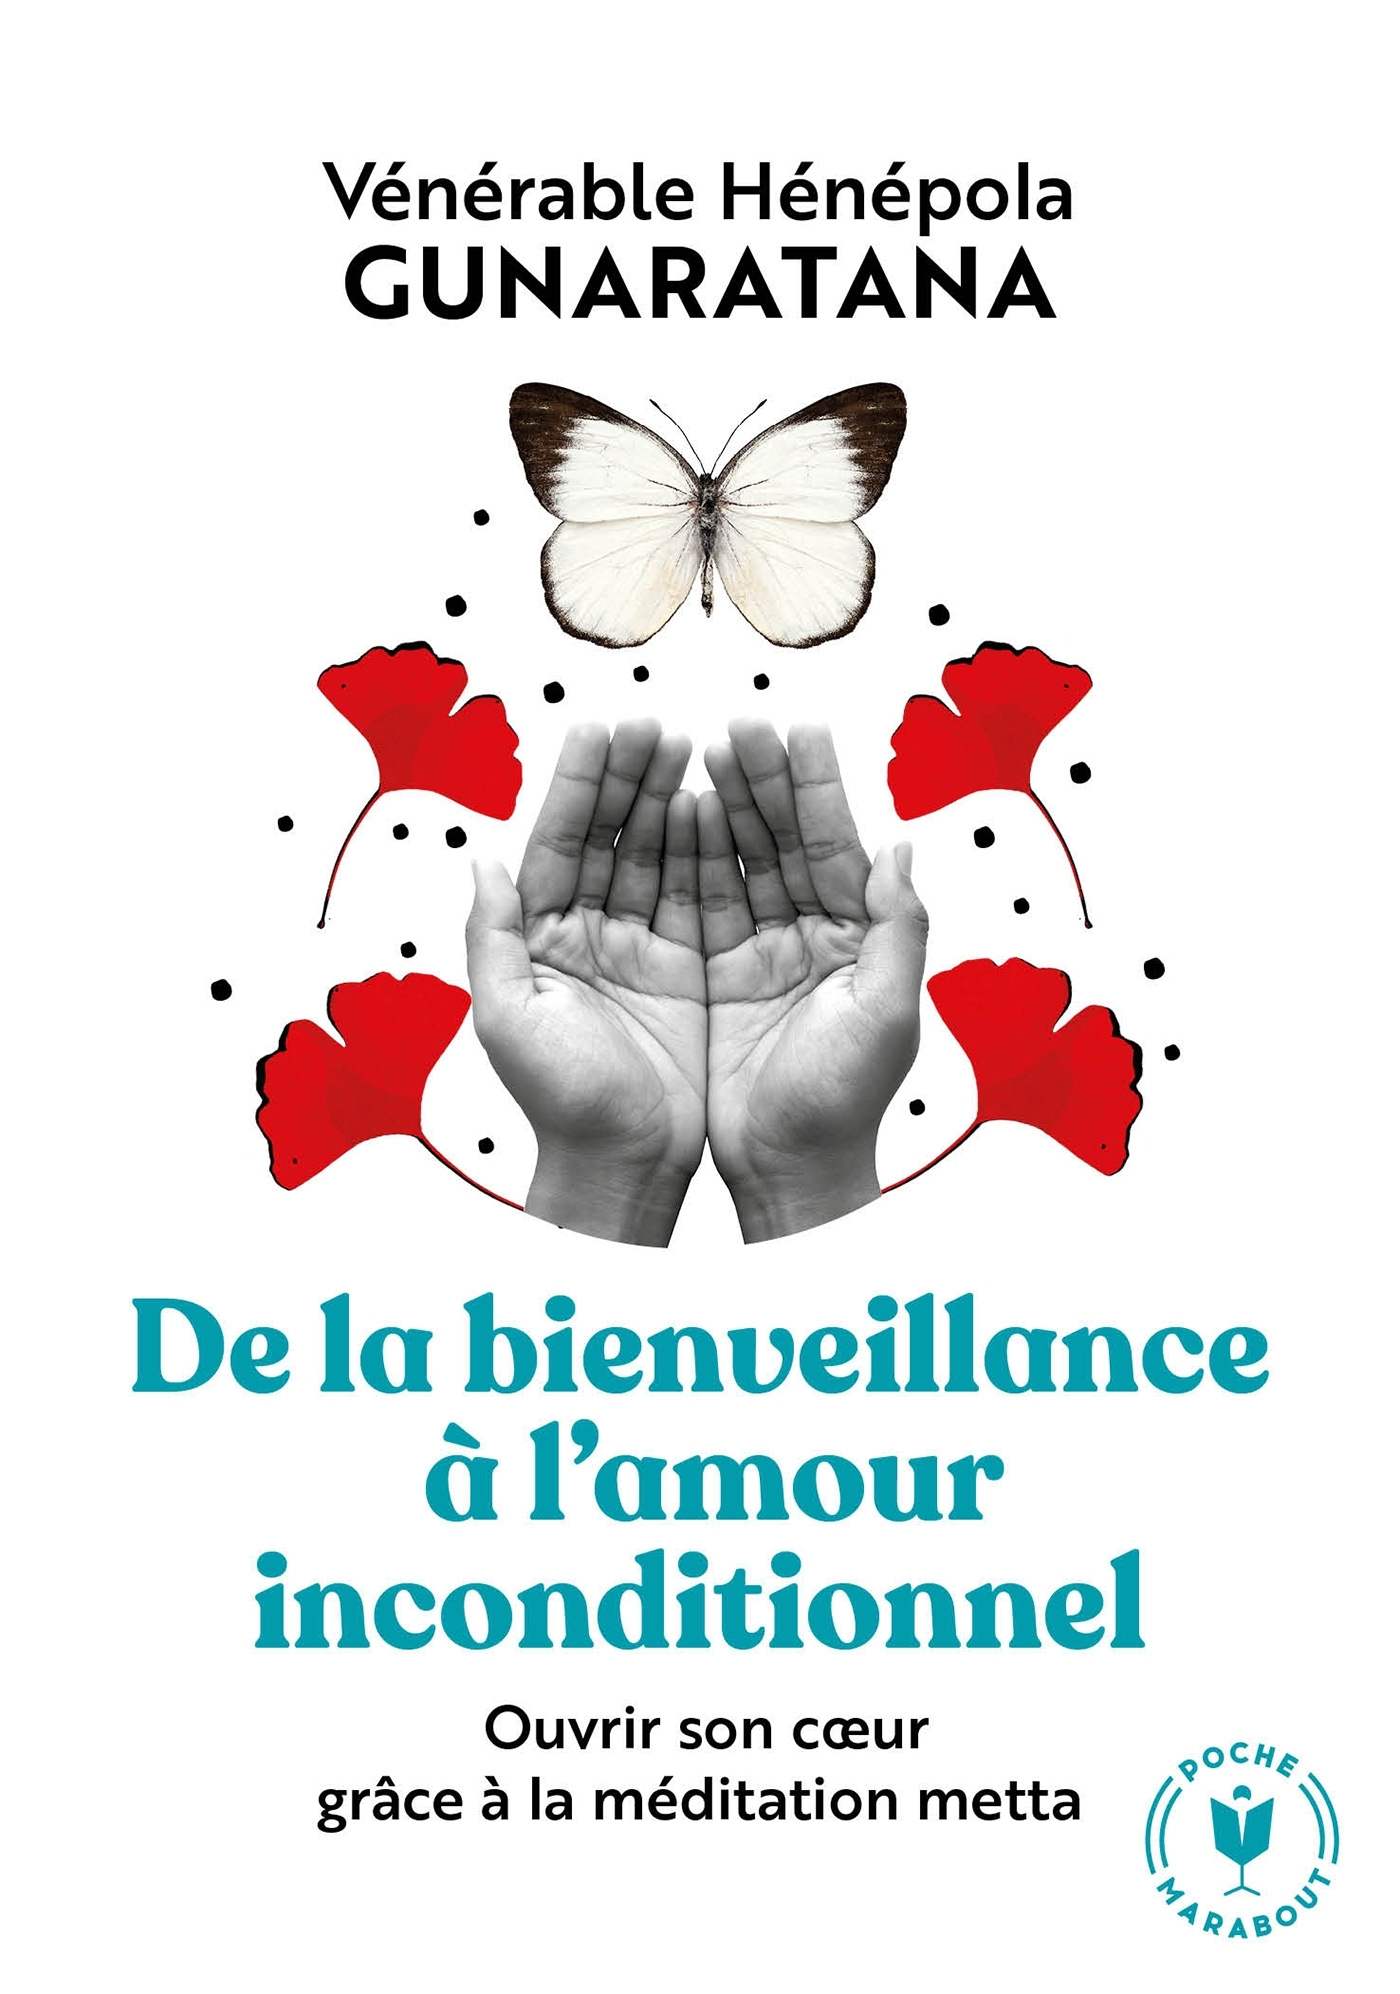 DE LA BIENVEILLANCE A L'AMOUR INCONDITIONNEL